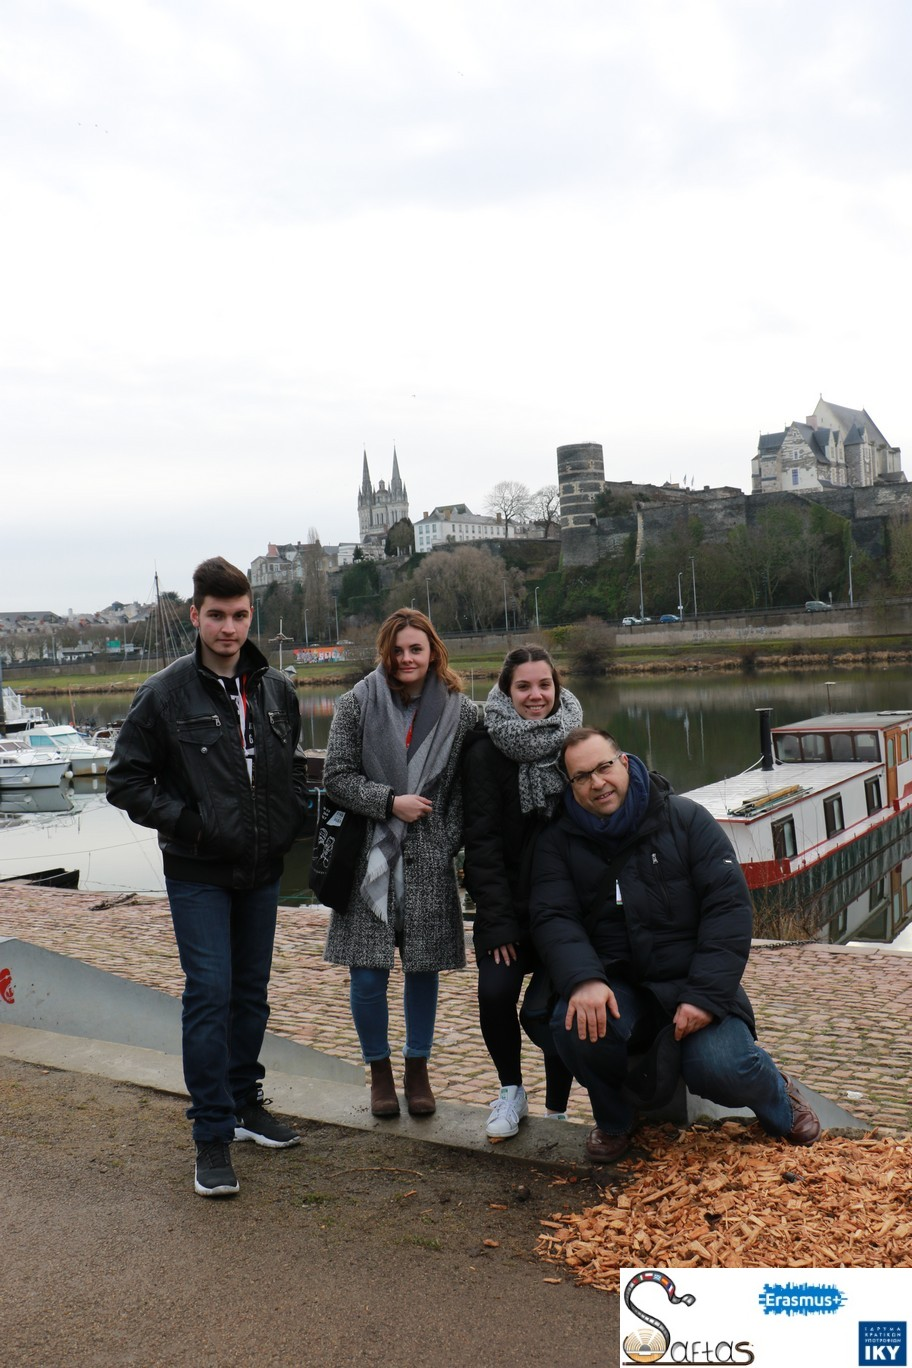 angers088